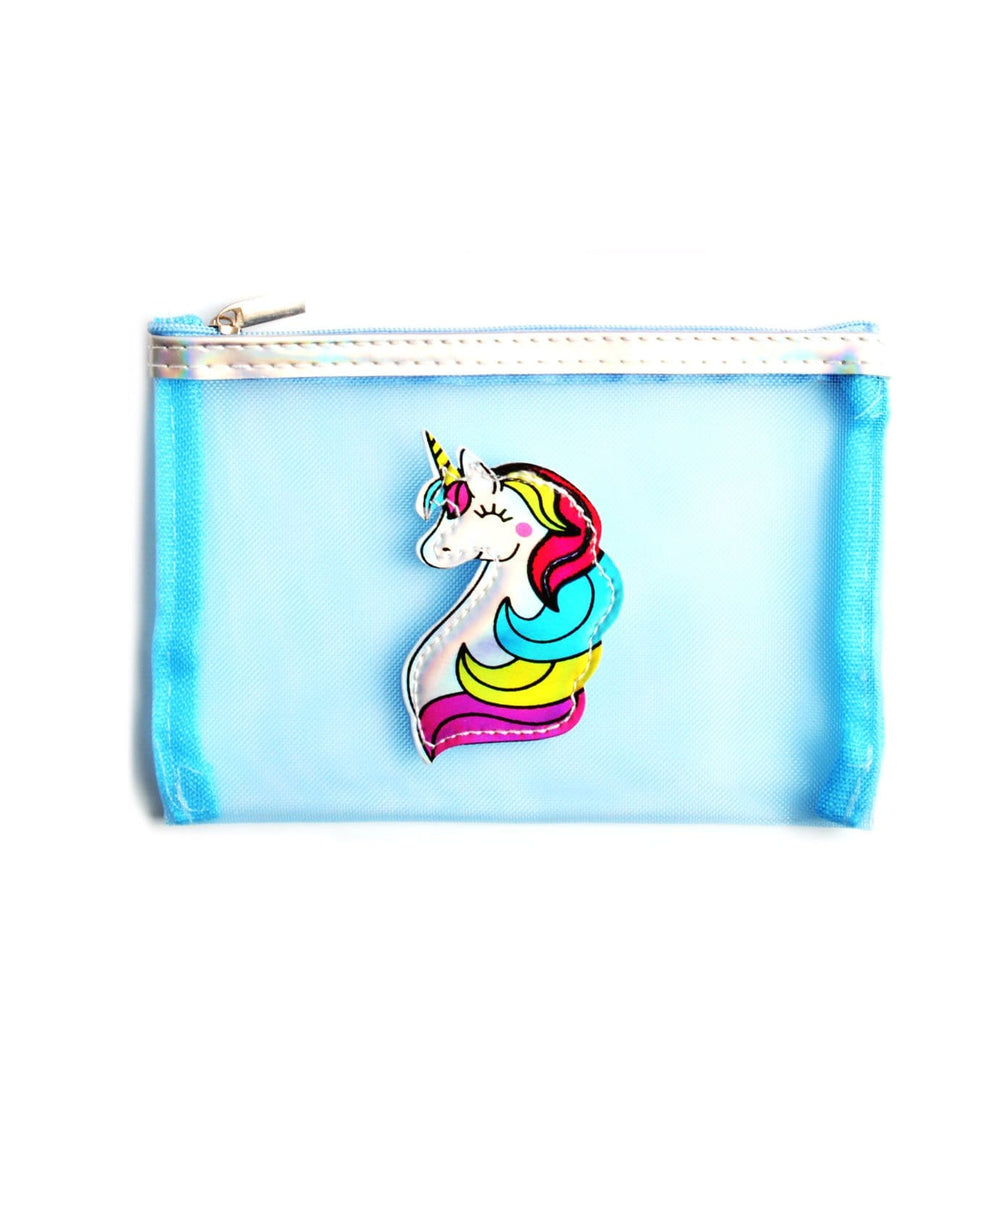 It's Magic! Coin Purse